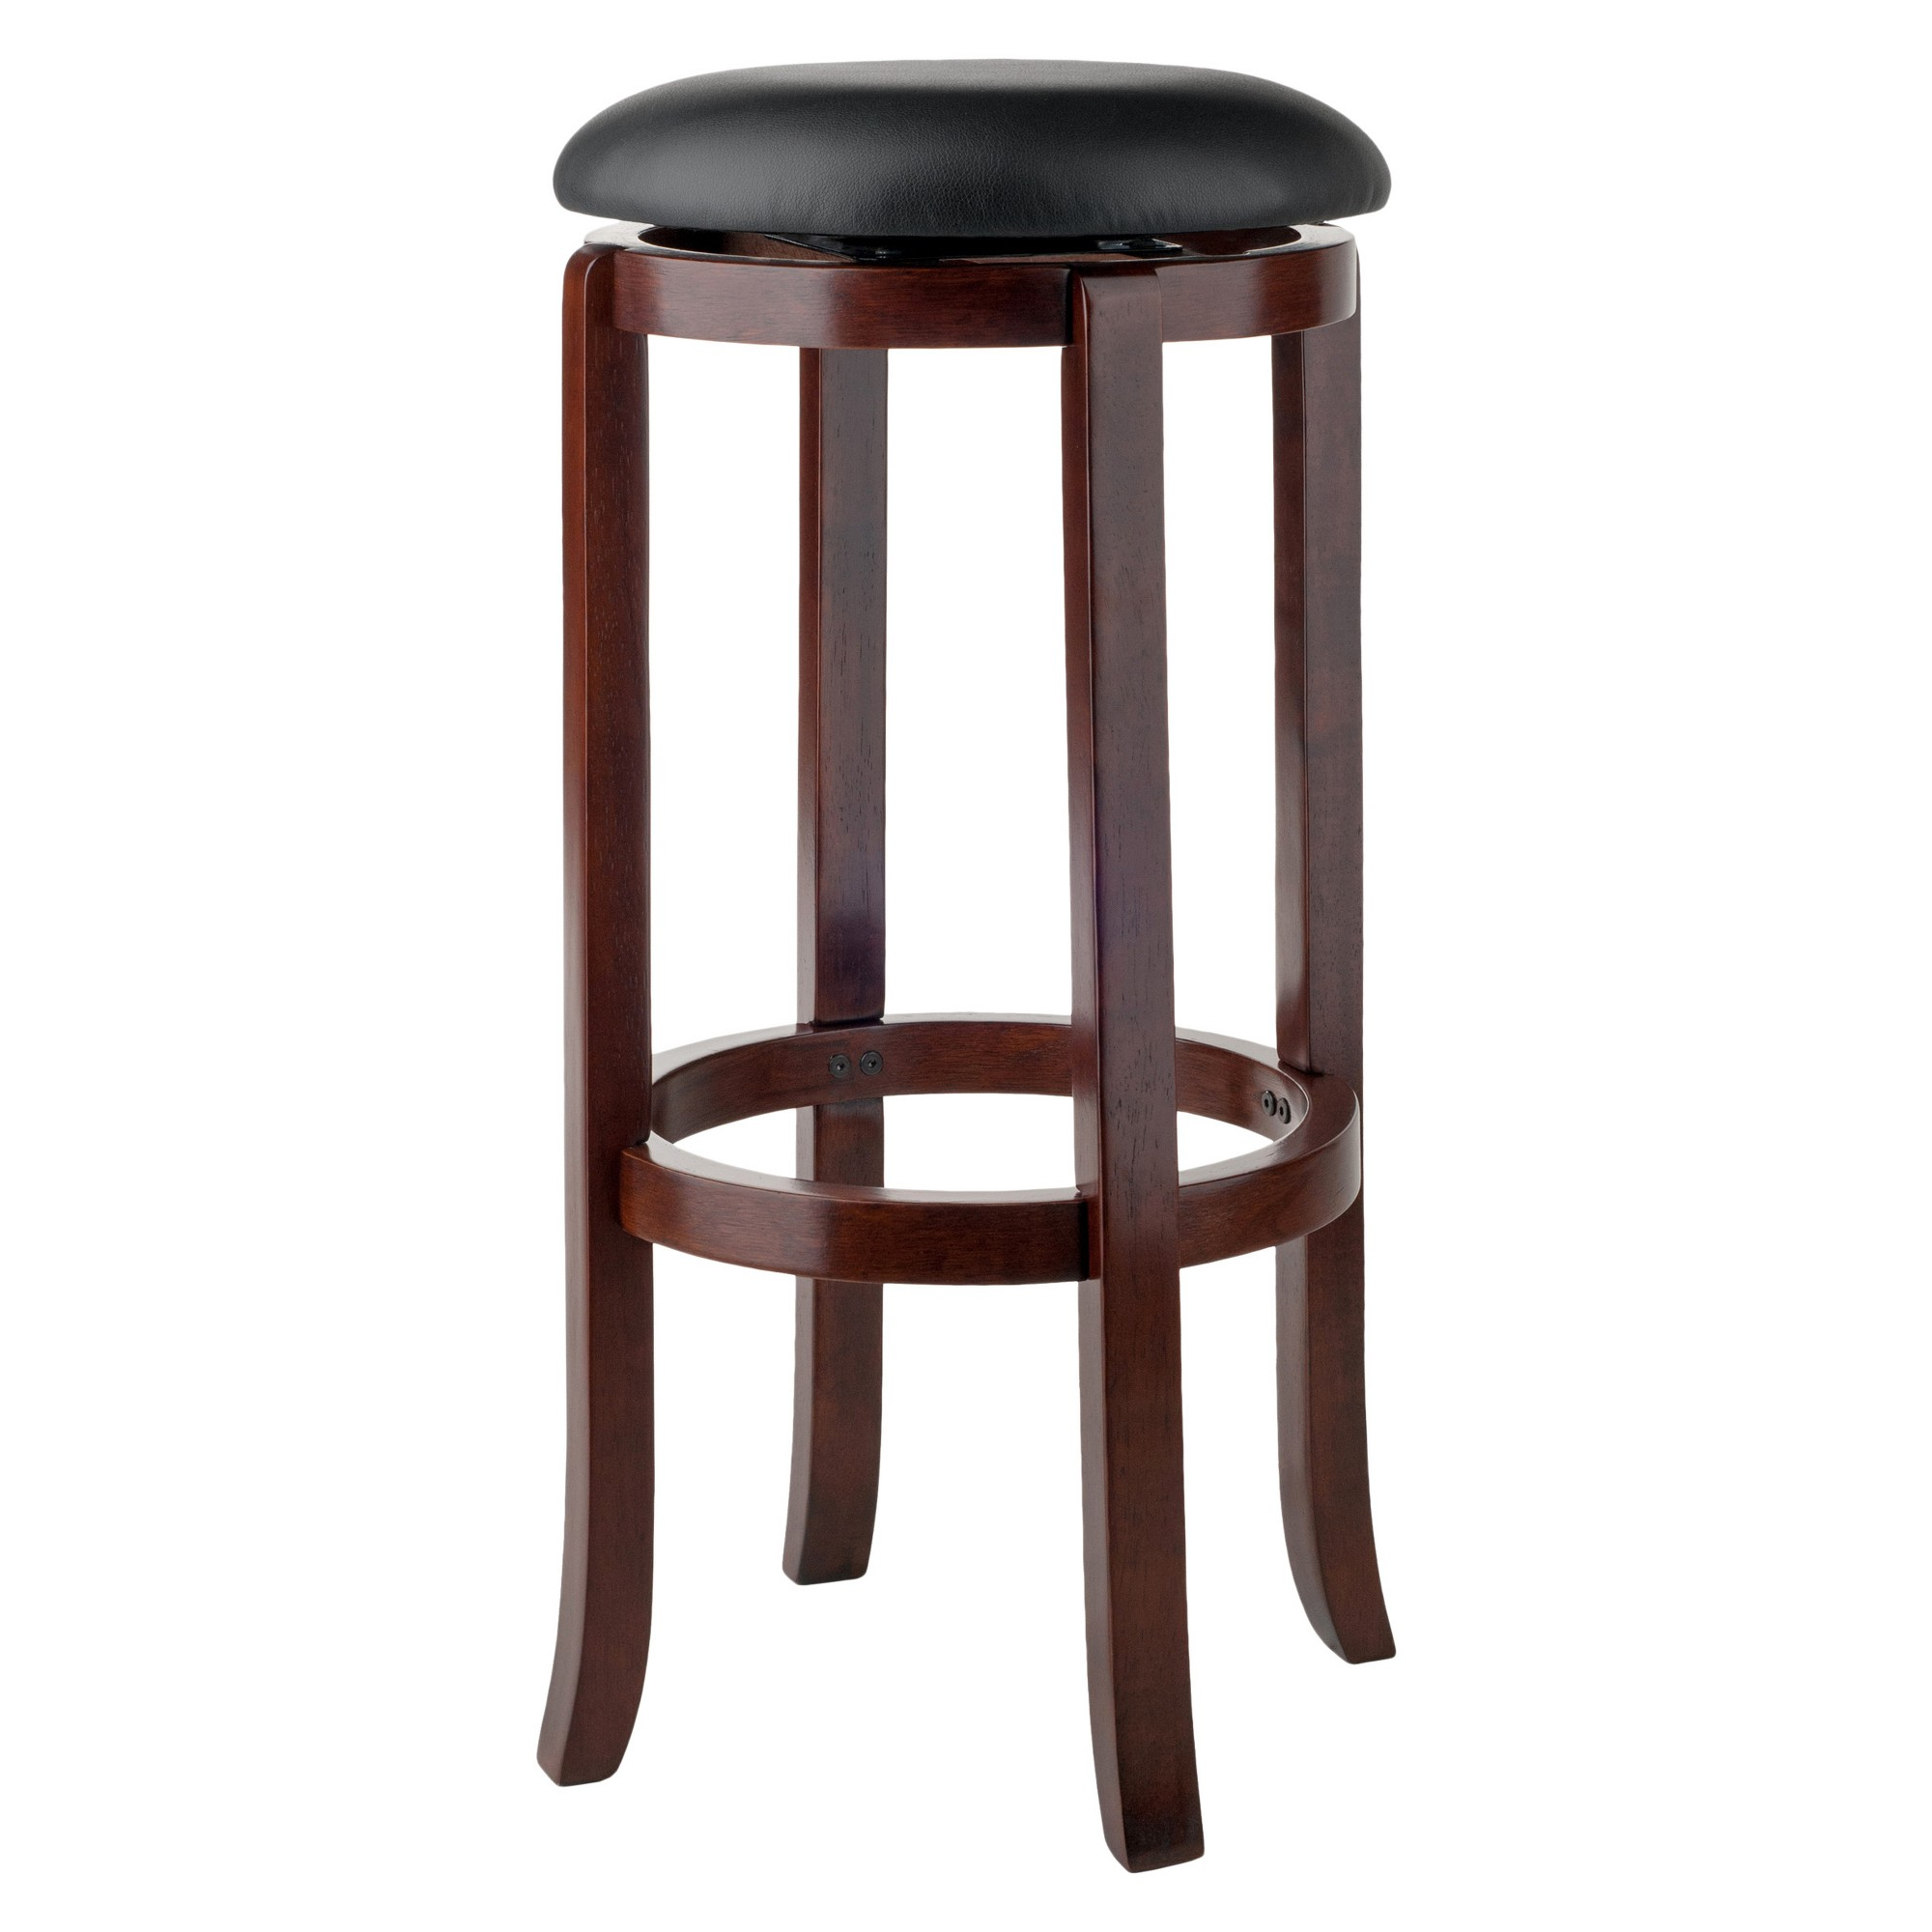 Admirable 30 Walcott Swivel Bar Stools Walnut Winsome Products Pdpeps Interior Chair Design Pdpepsorg